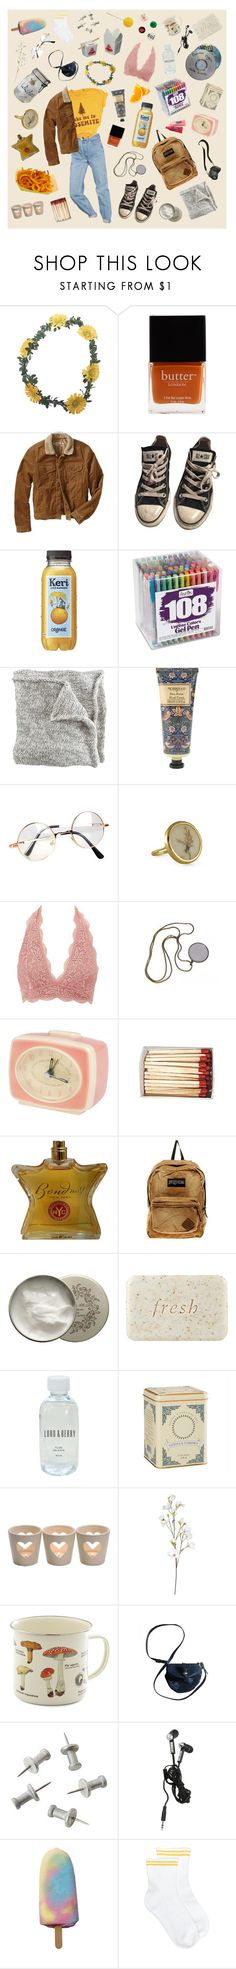 """""""mess"""" by bethany-alice4 ❤ liked on Polyvore featuring Wet Seal, Urban Outfitters, Butter London, Gap, Converse, William Morris, Retrò, Charlotte Russe, Bond No. 9 and JanSport"""